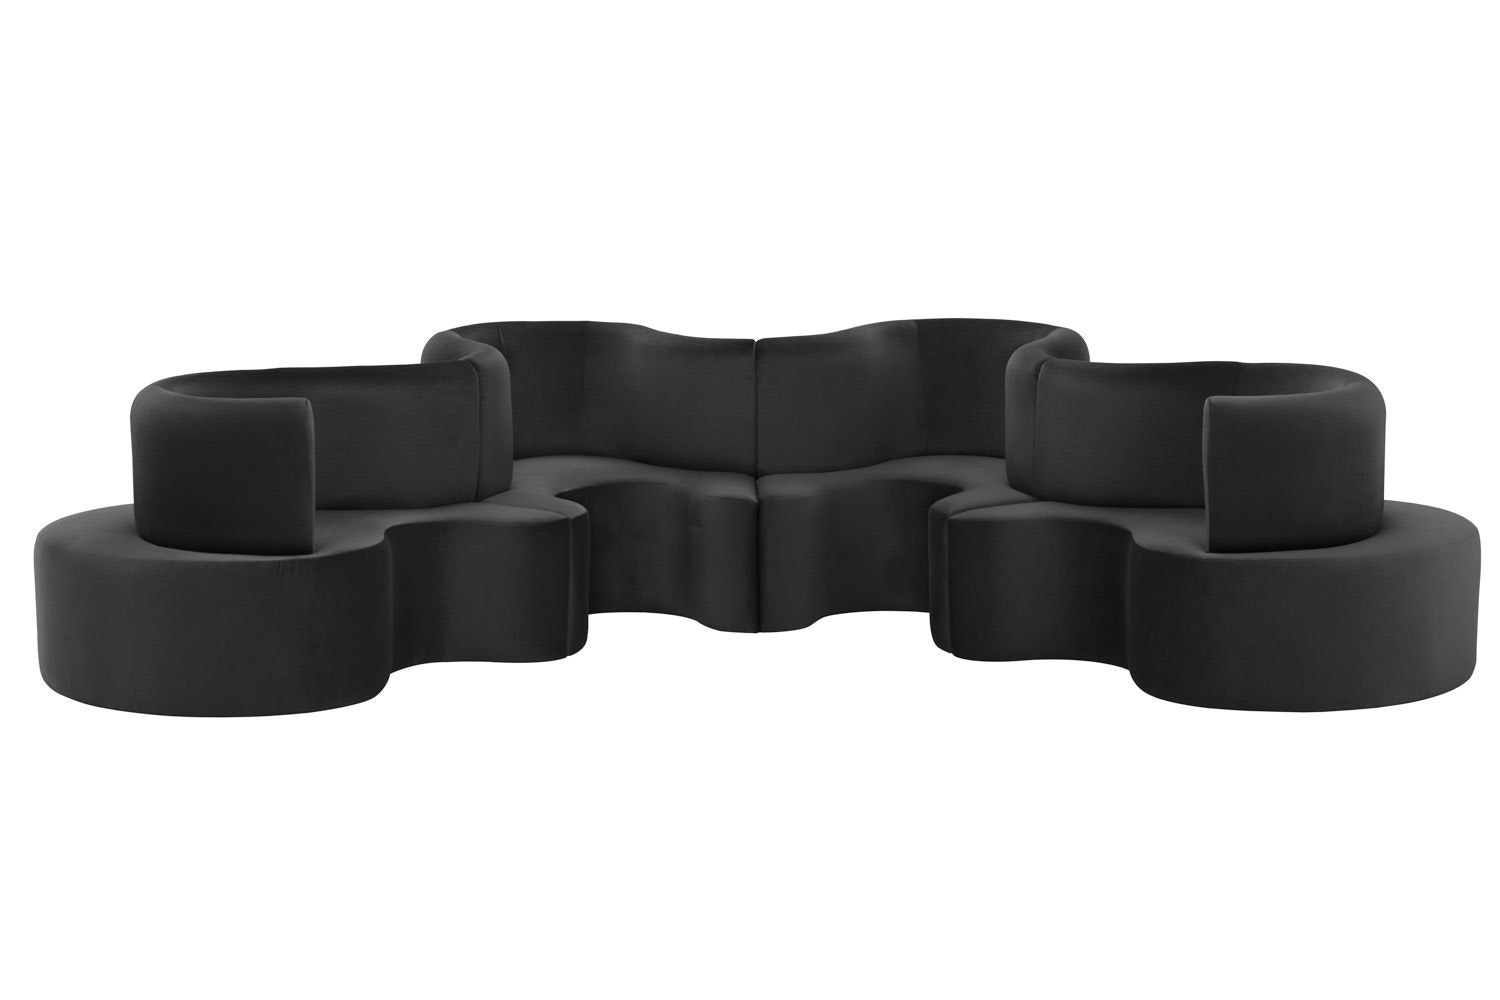 Cloverleaf Sofa - 4 Units by Verner Panton for Verpan